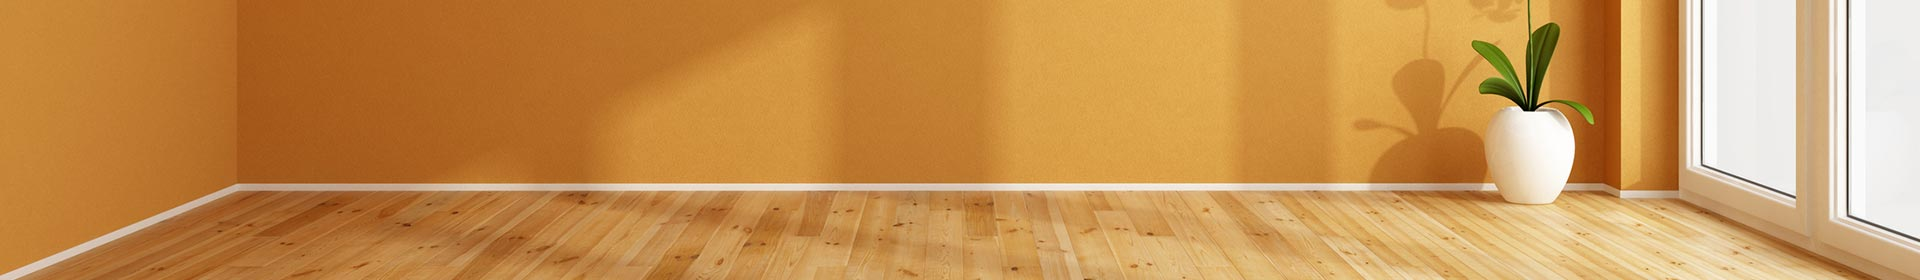 Flooring Professionally Fitted in Sheffield - A. Frost Sheffield Builders and Joiners